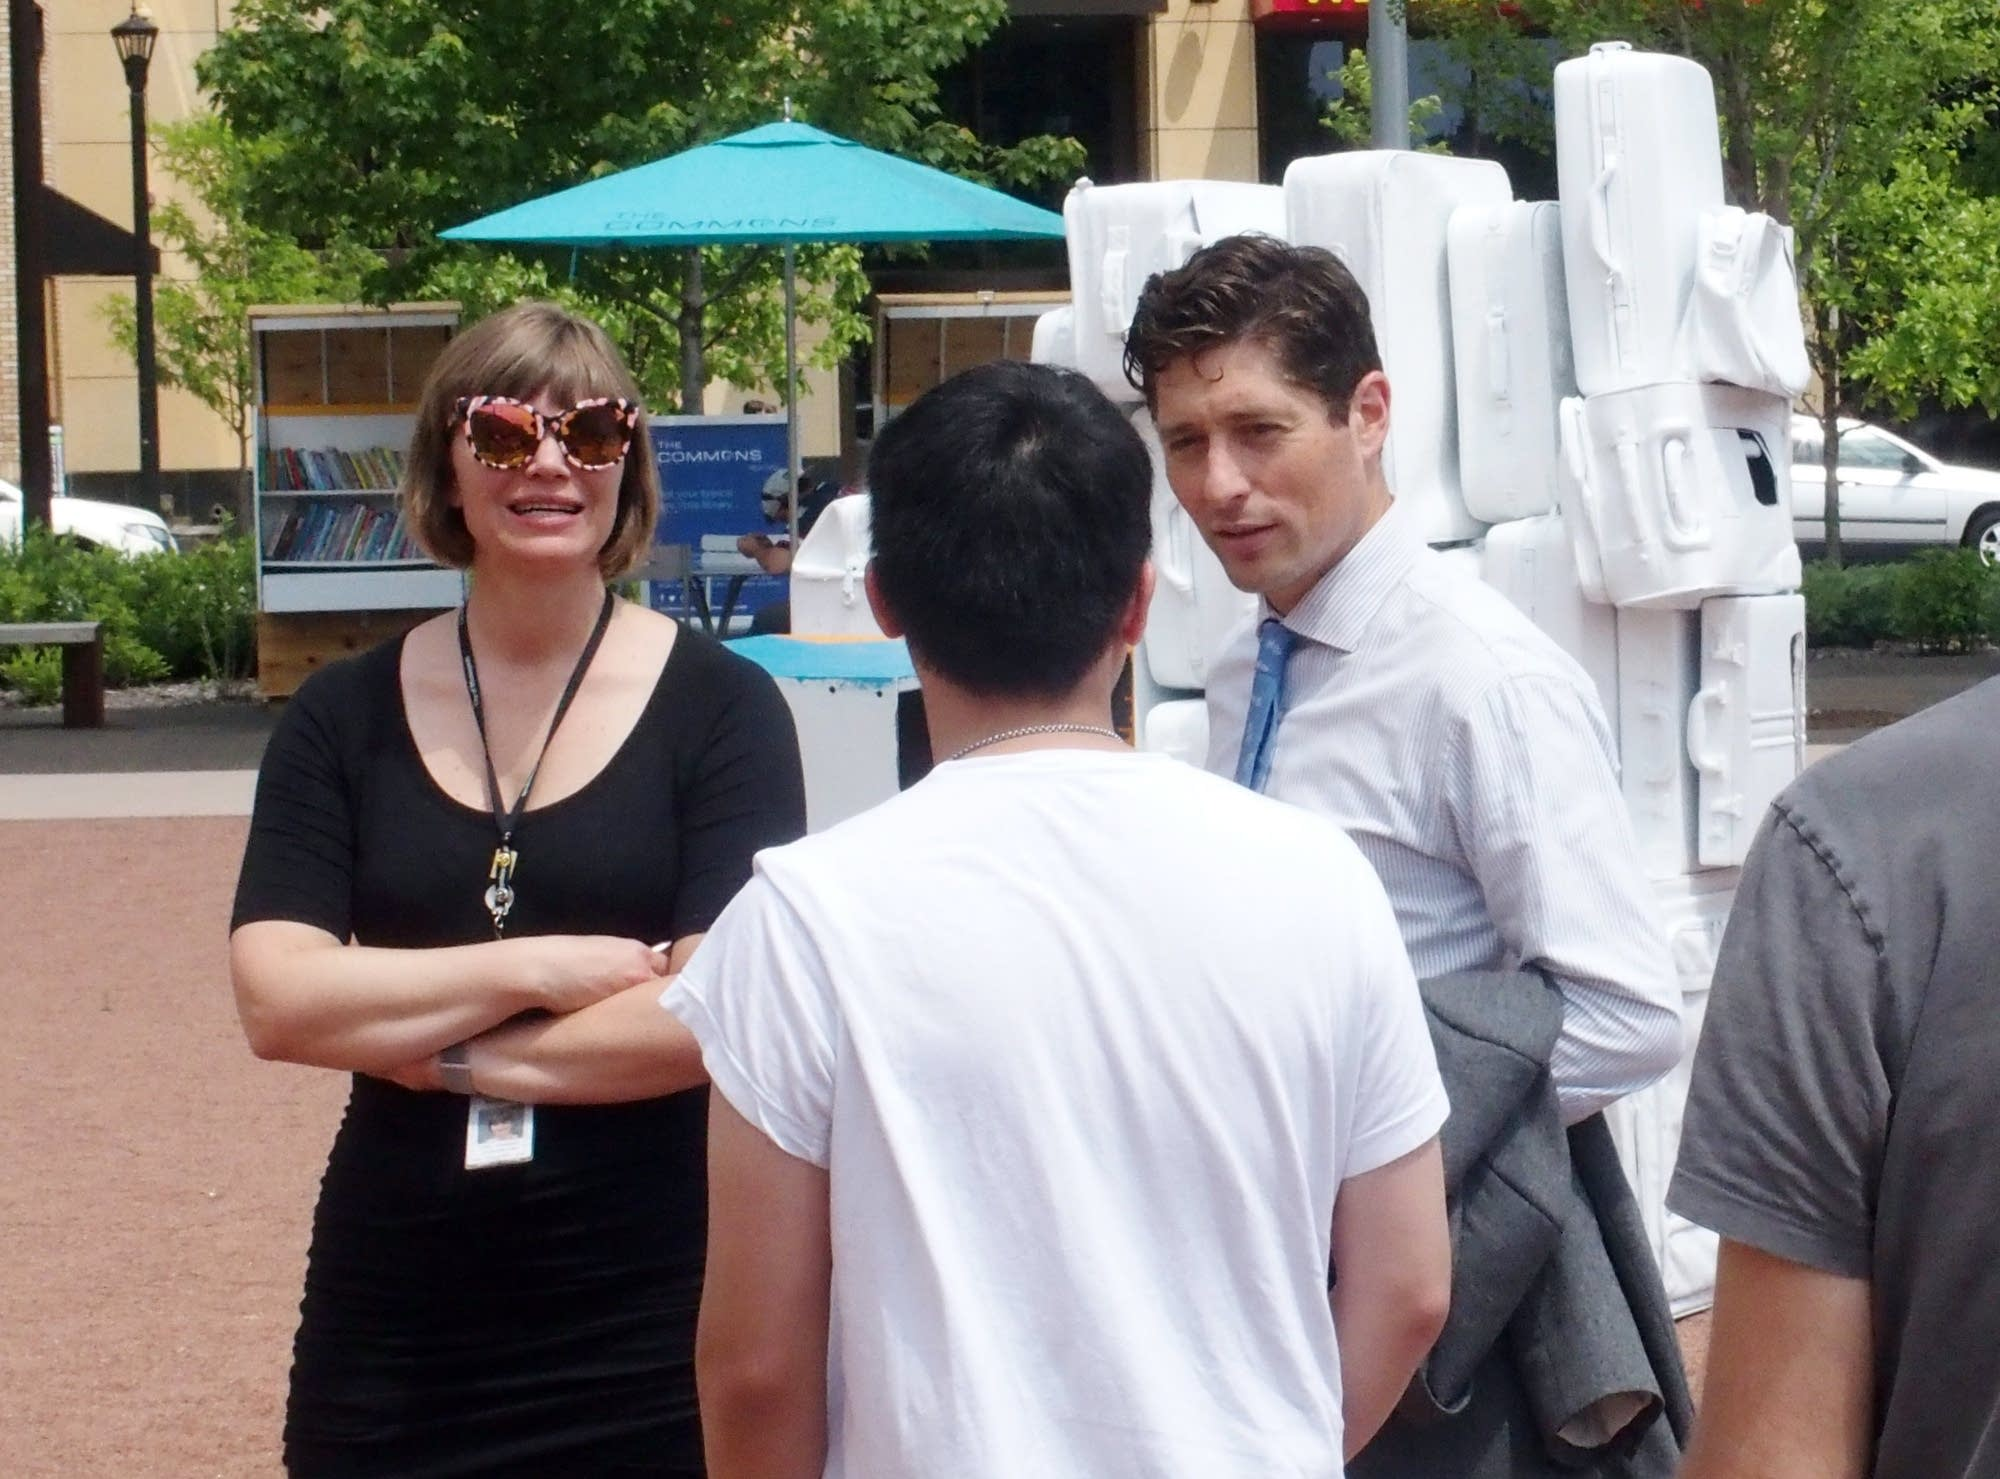 Mayor Jacob Frey dropped by as volunteers assembled 'Carry On Homes.'